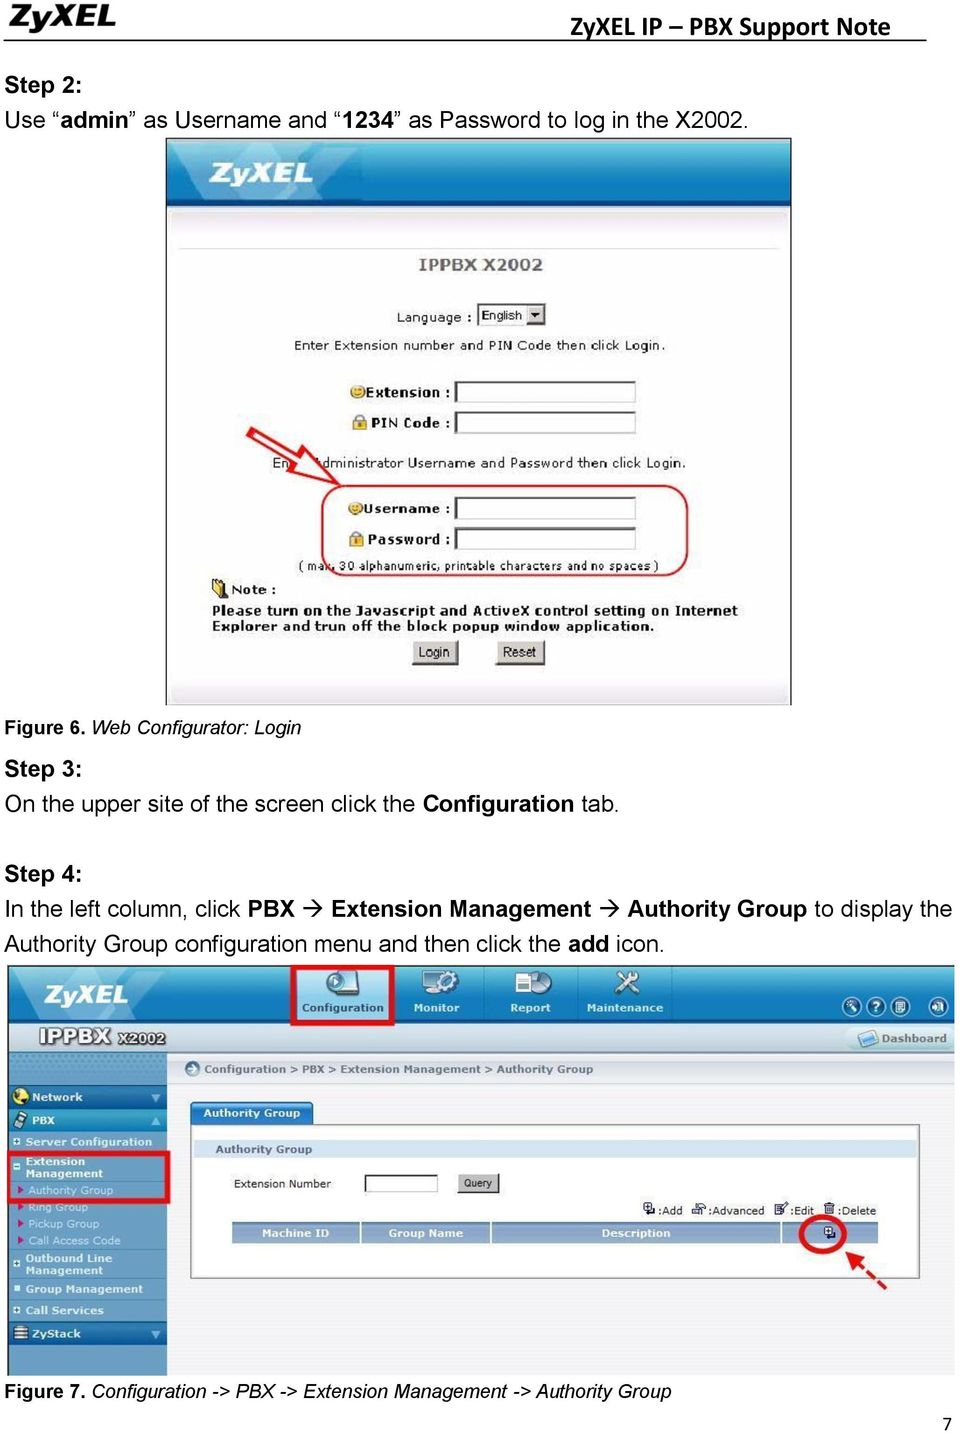 Step 4: In the left column, click PBX Extension Management Authority Group to display the Authority Group